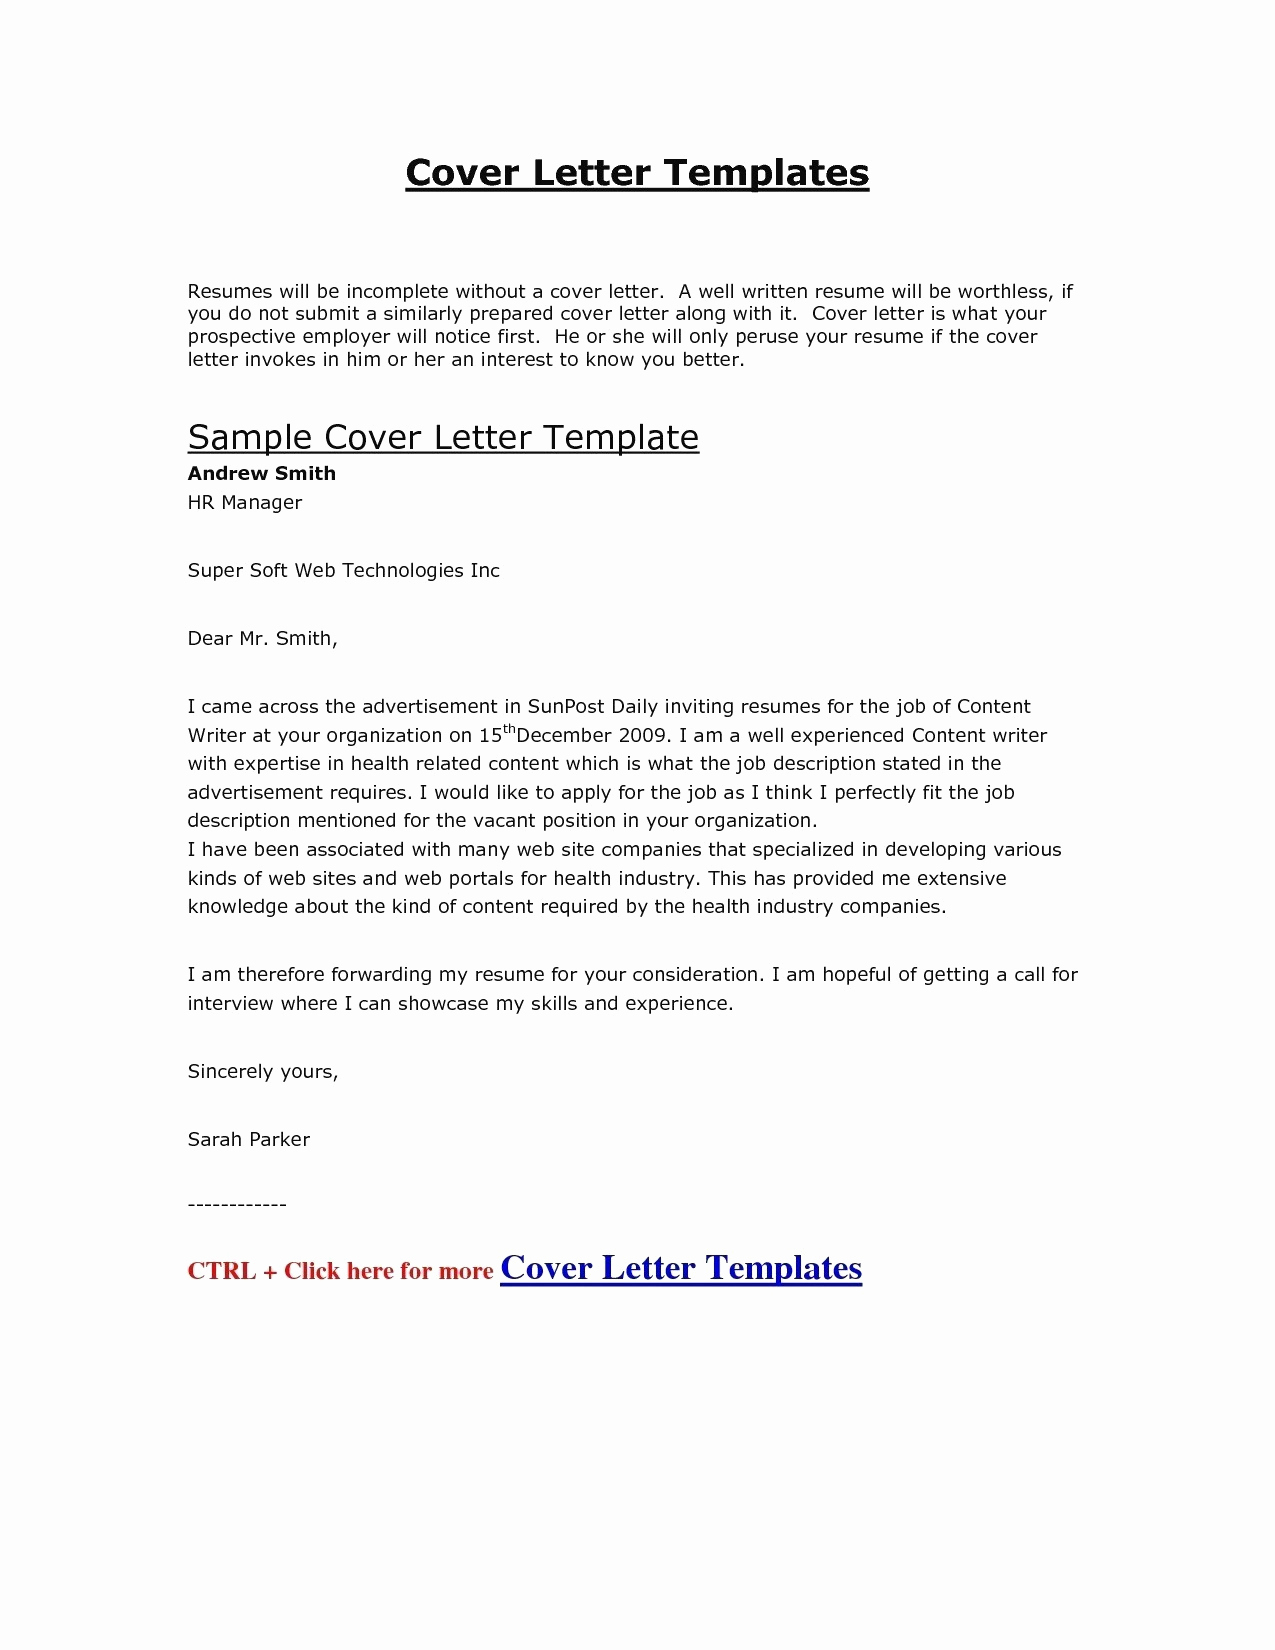 Resume Cover Letter Template Free - Resume with Covering Letter Cover Letter Resume Template Luxury